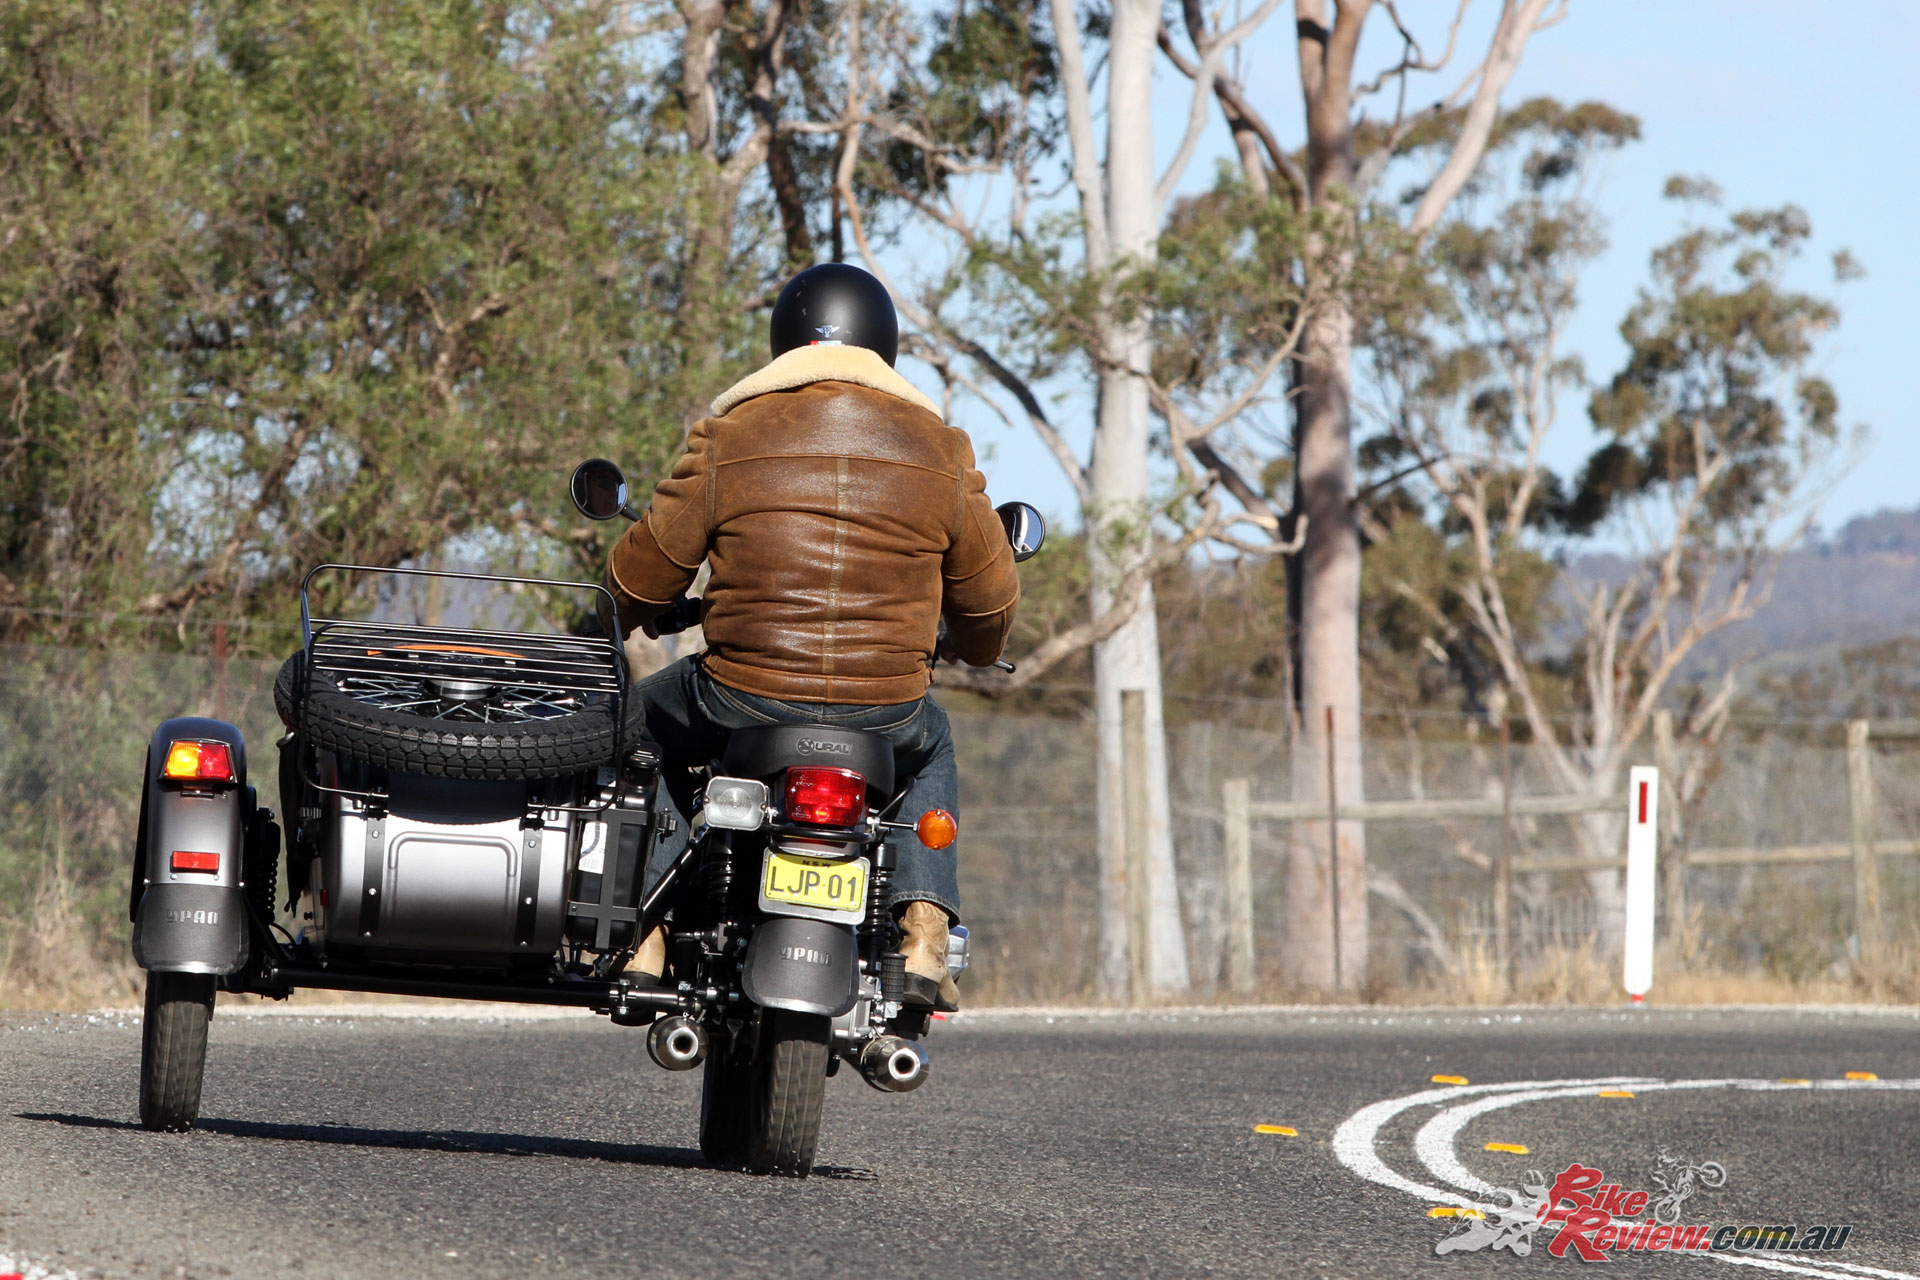 The Ural Ranger is at home in the suburbs as it is cruising the highway